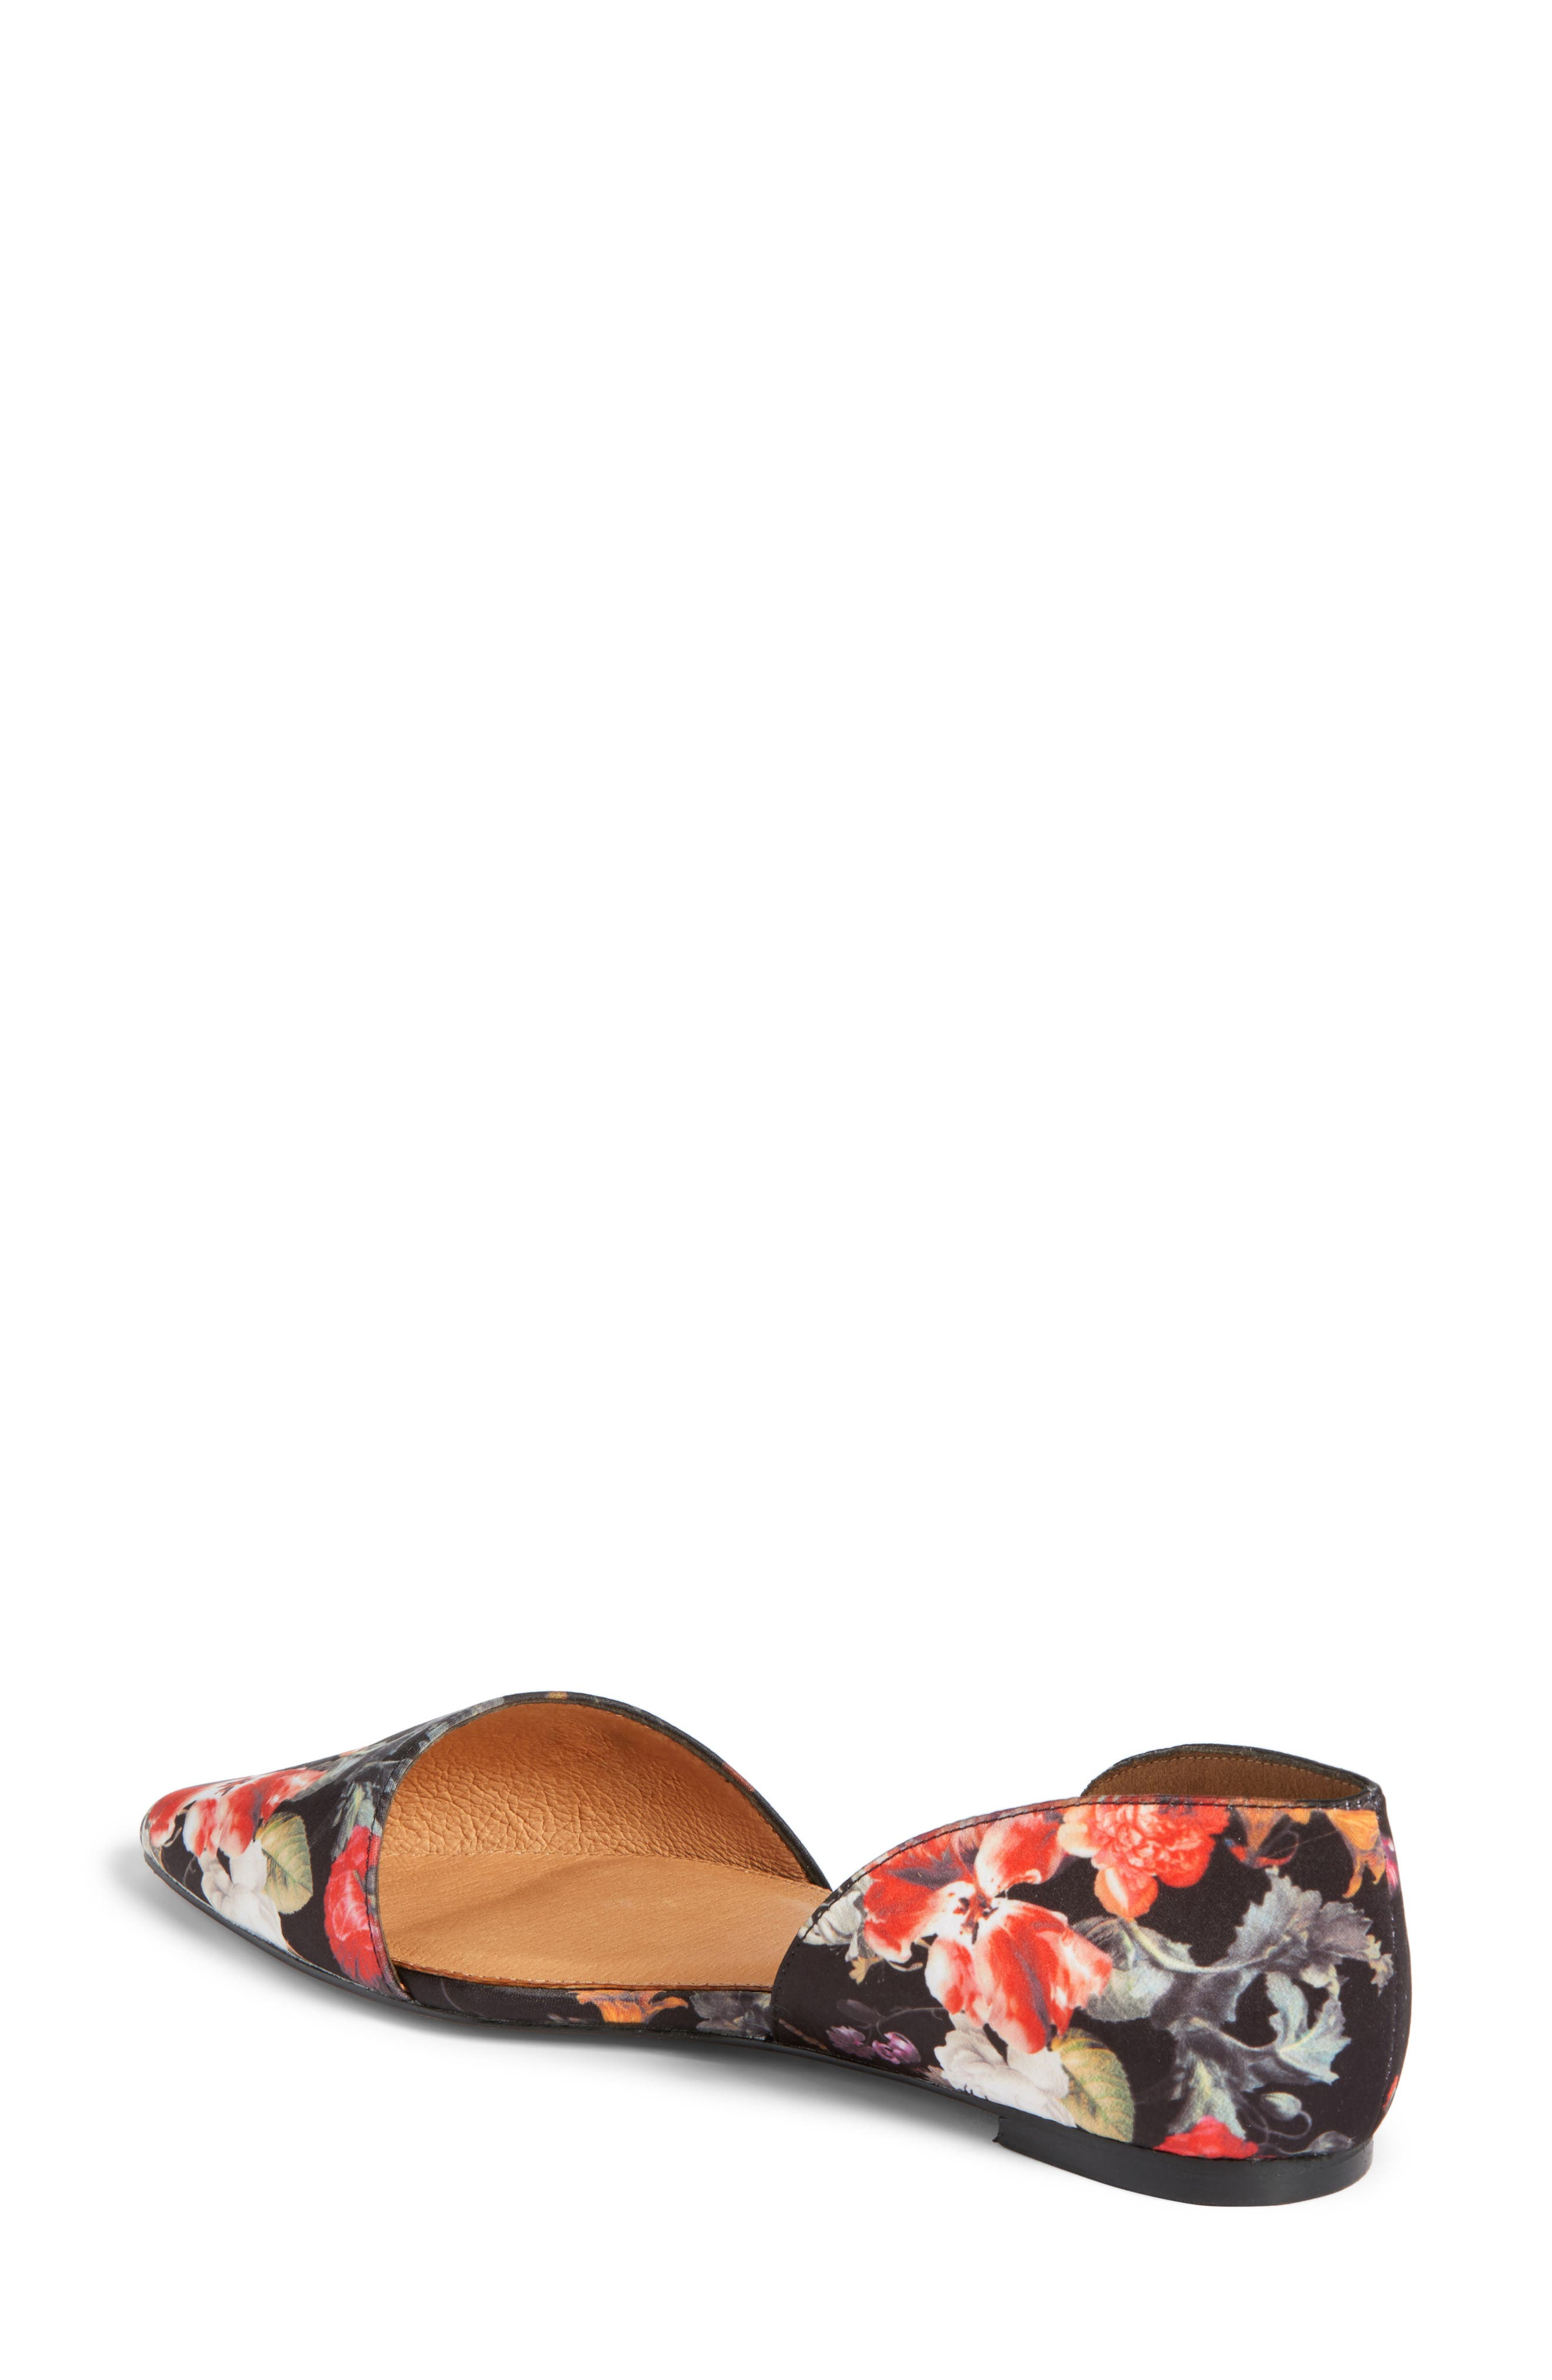 Maisy d'Orsay Flat,                             Alternate thumbnail 3, color,                             Black/ Red Floral Fabric